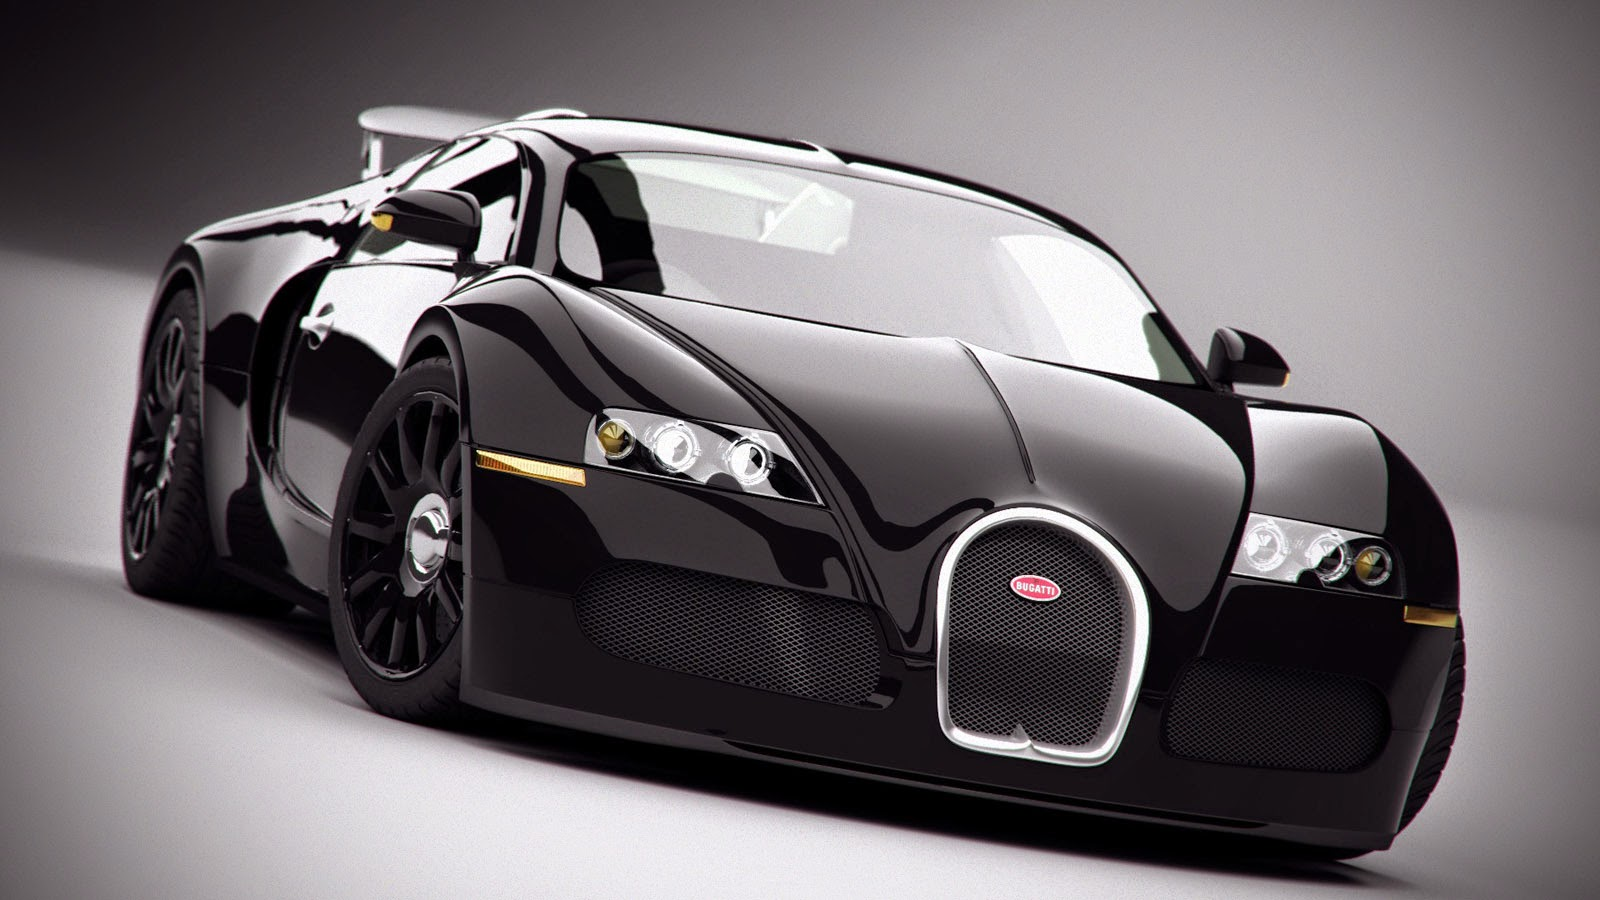 2015 Bugatti Veyron The faster Car | New car design and Price